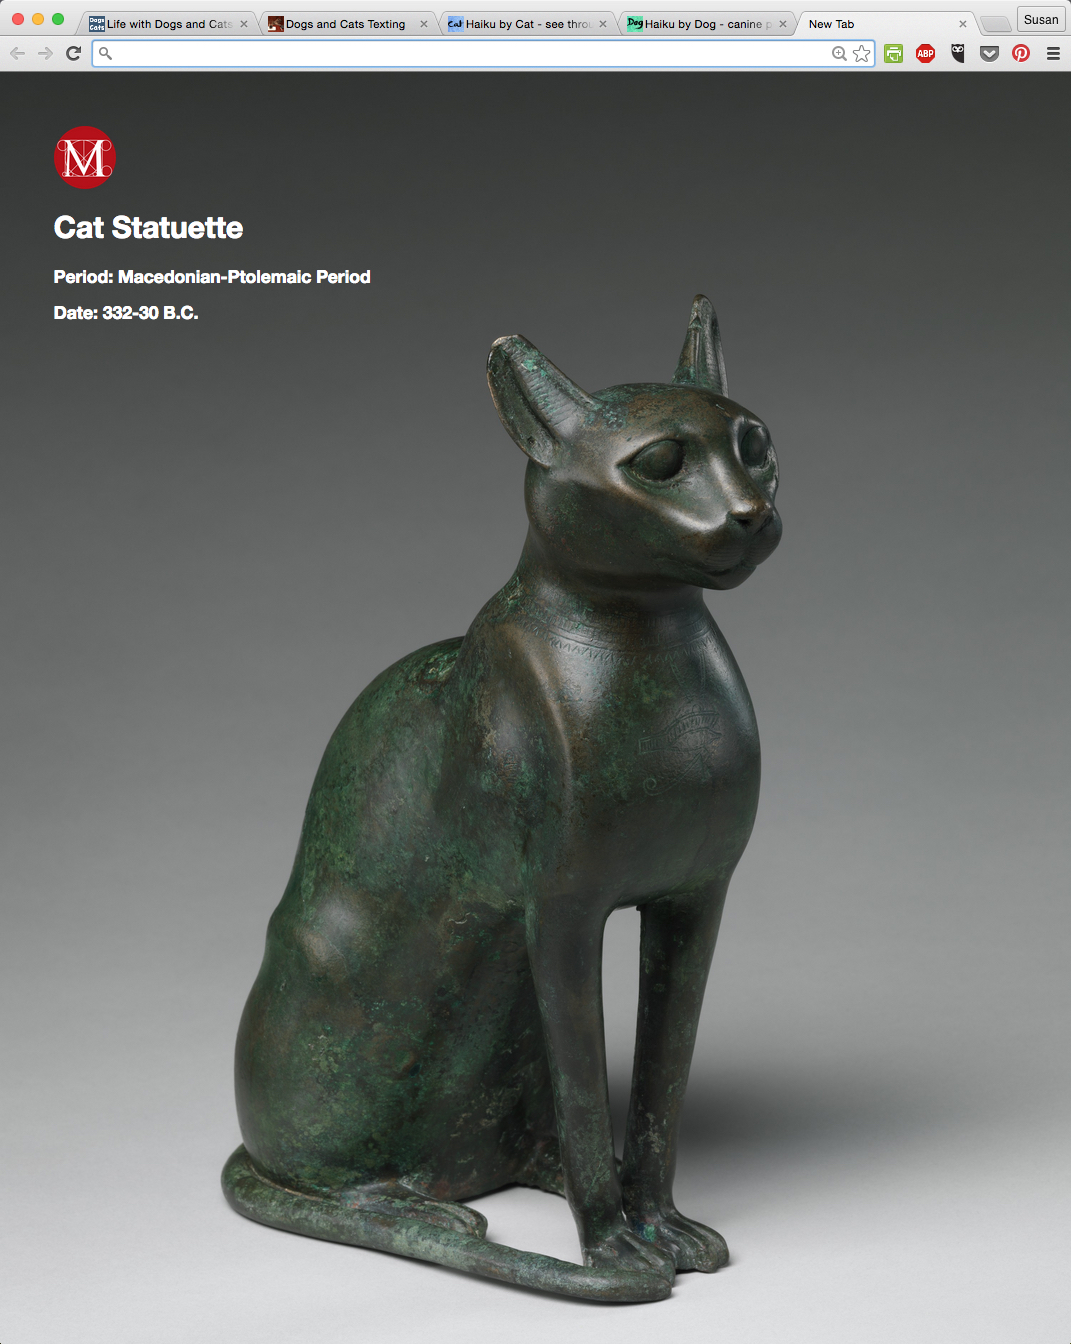 Cat Statuette / Macedonian-Ptolemaic Period from Meow Met Chrome Extension.